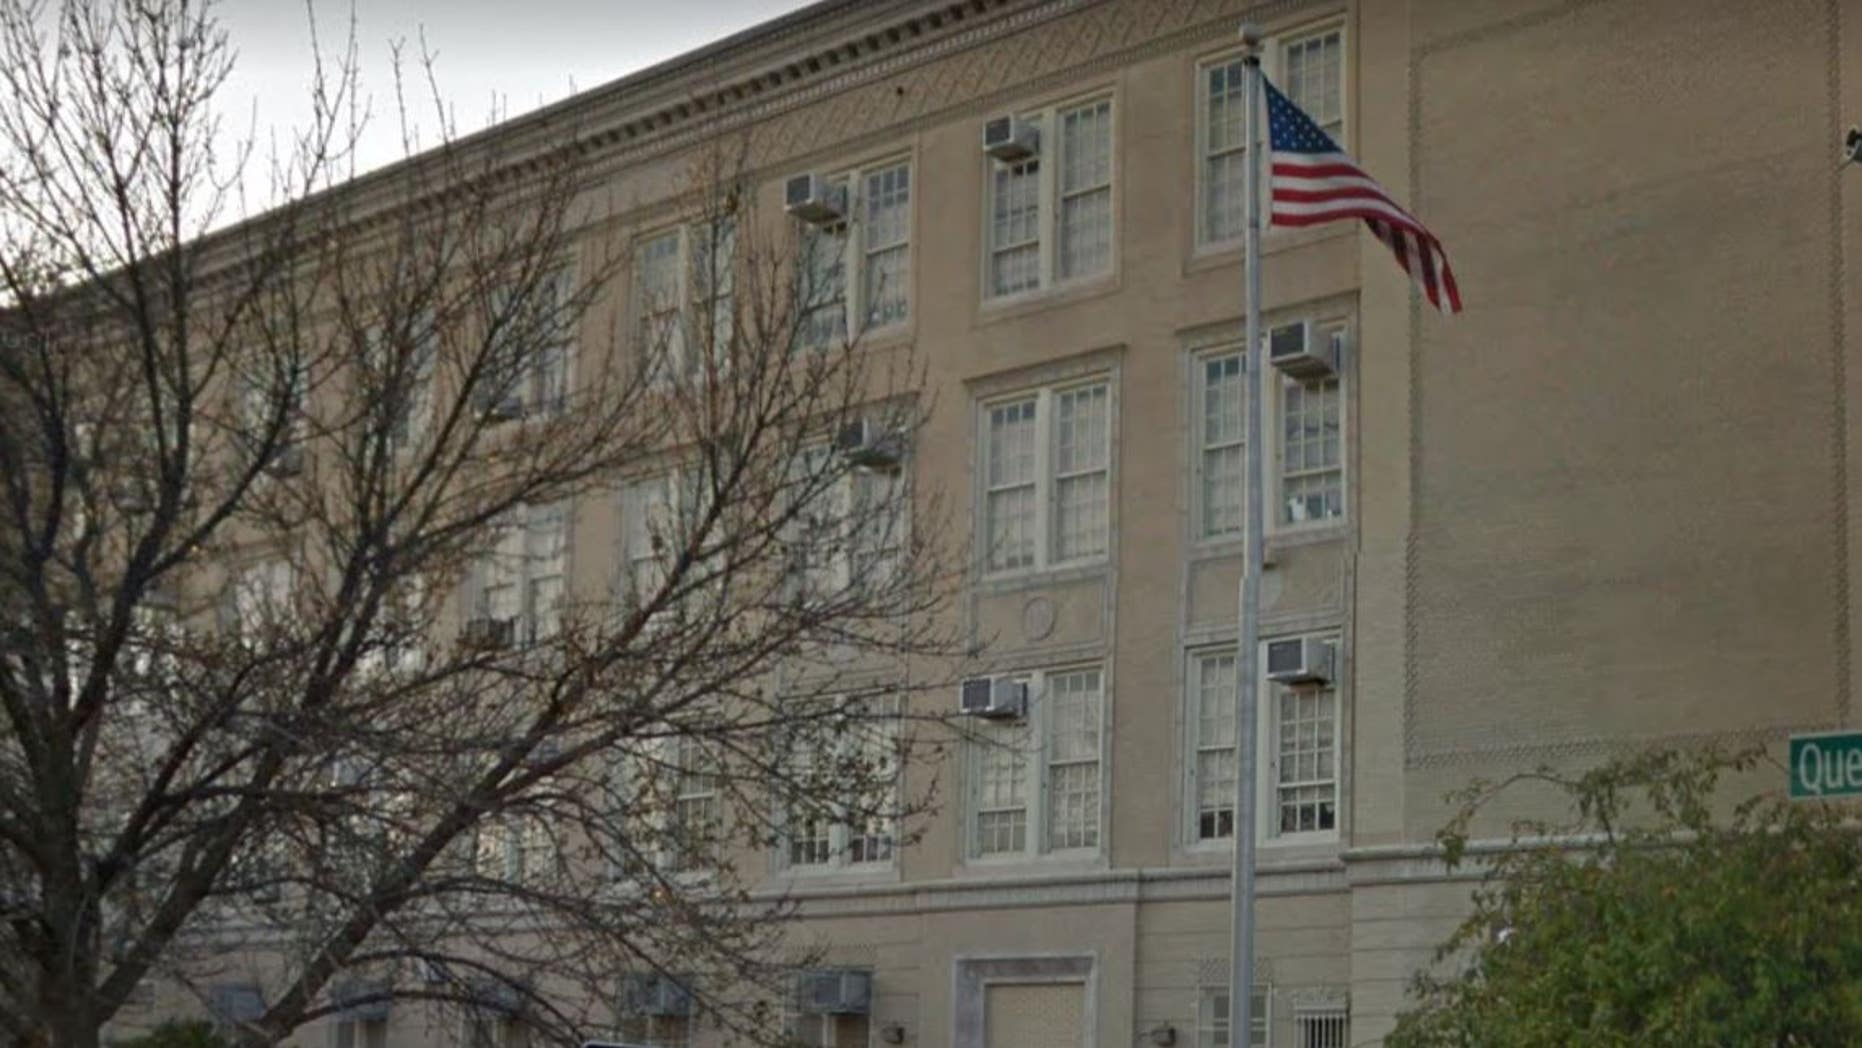 A janitor employed at PS 222 in Marine Park, Brooklyn, was arrested for allegedly sexually abusing teacher.